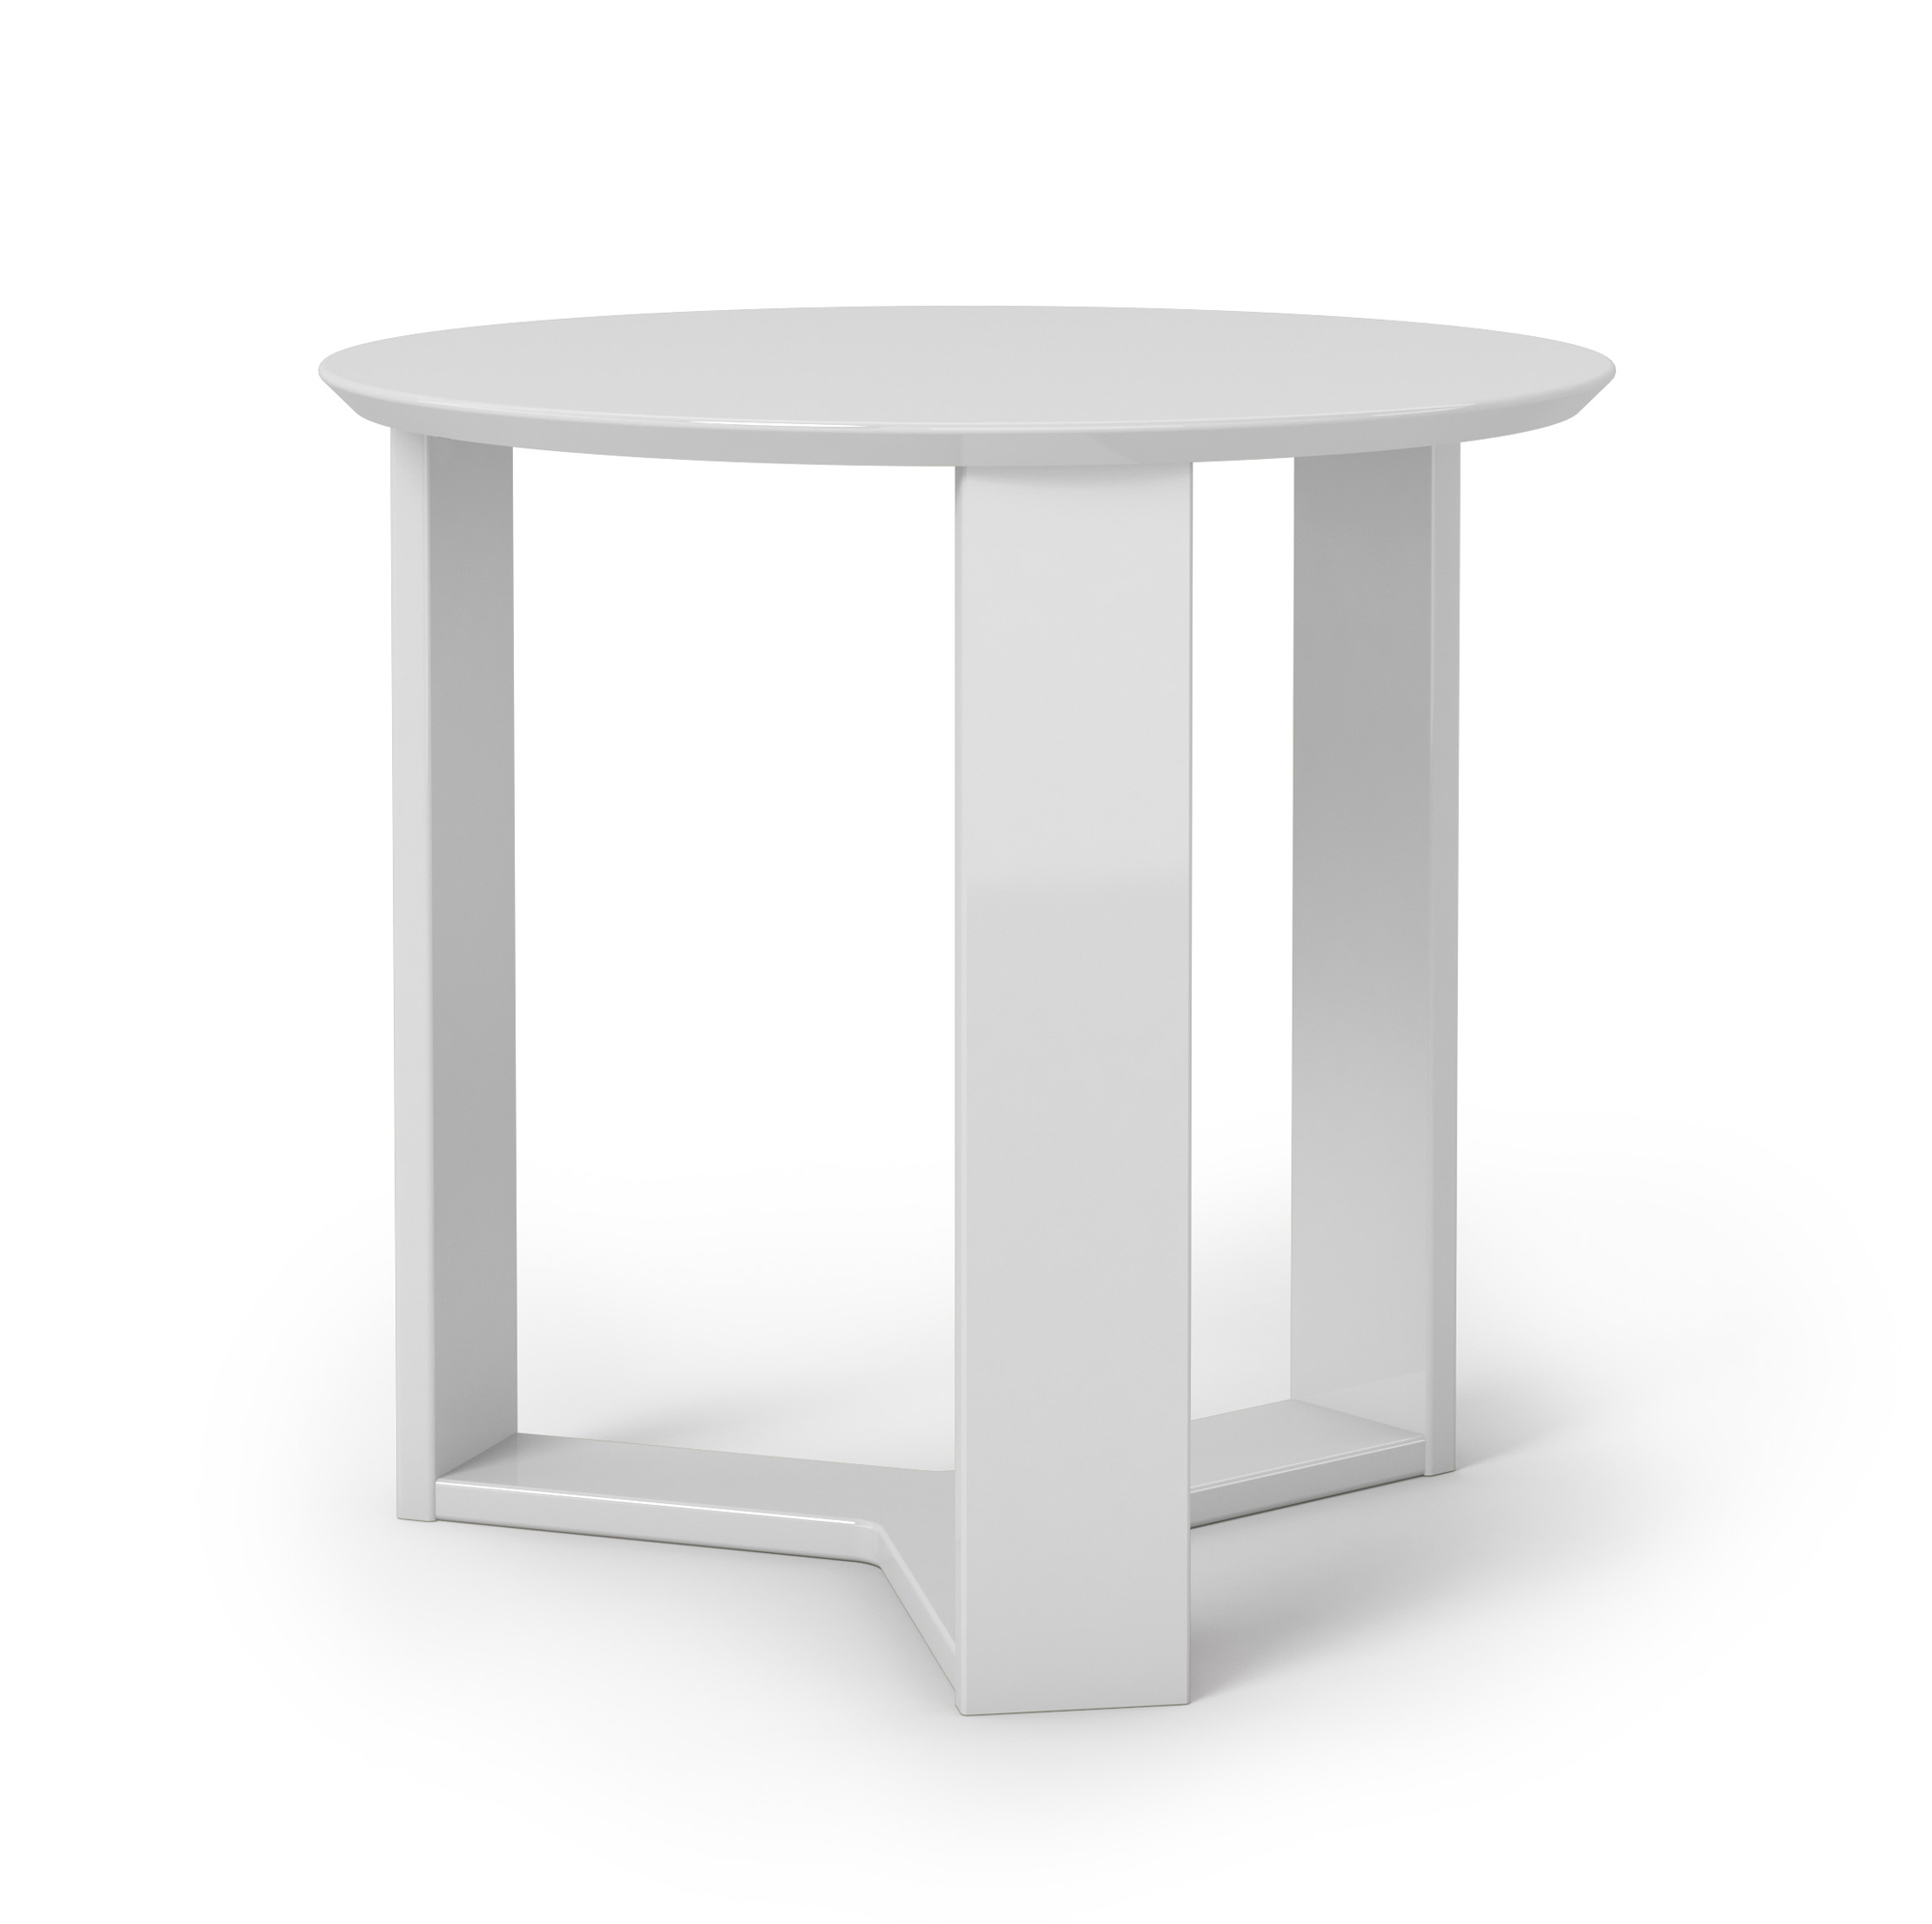 Madison 2 0 white gloss round accent end table by for White end table